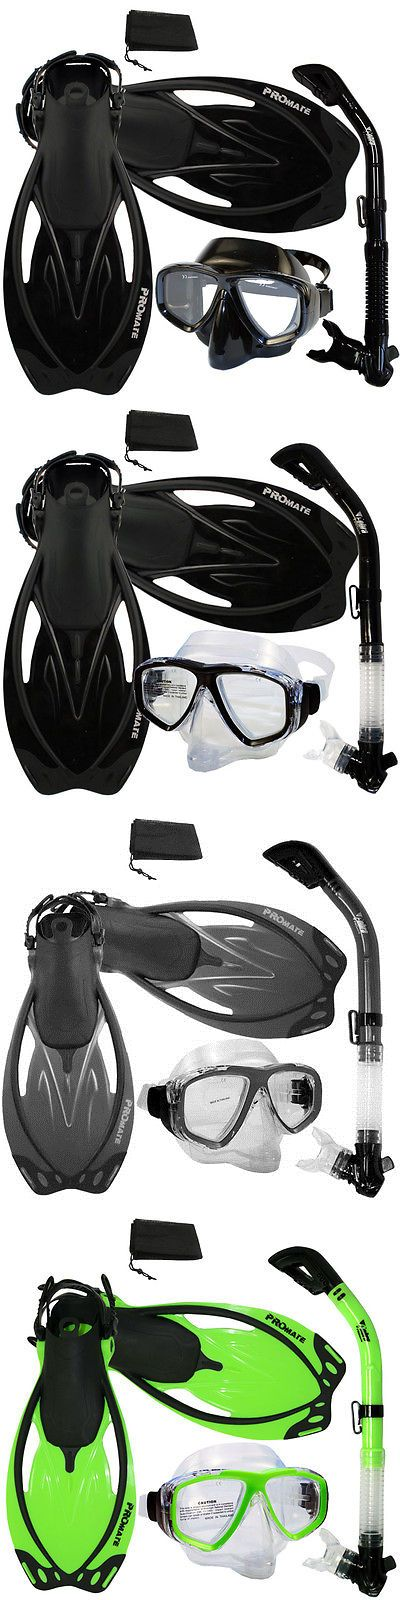 Snorkels and Sets 71162: Snorkeling Purge Mask, Dry Snorkel, Fins, Bag Dive Gear Gift Package Set BUY IT NOW ONLY: $49.95